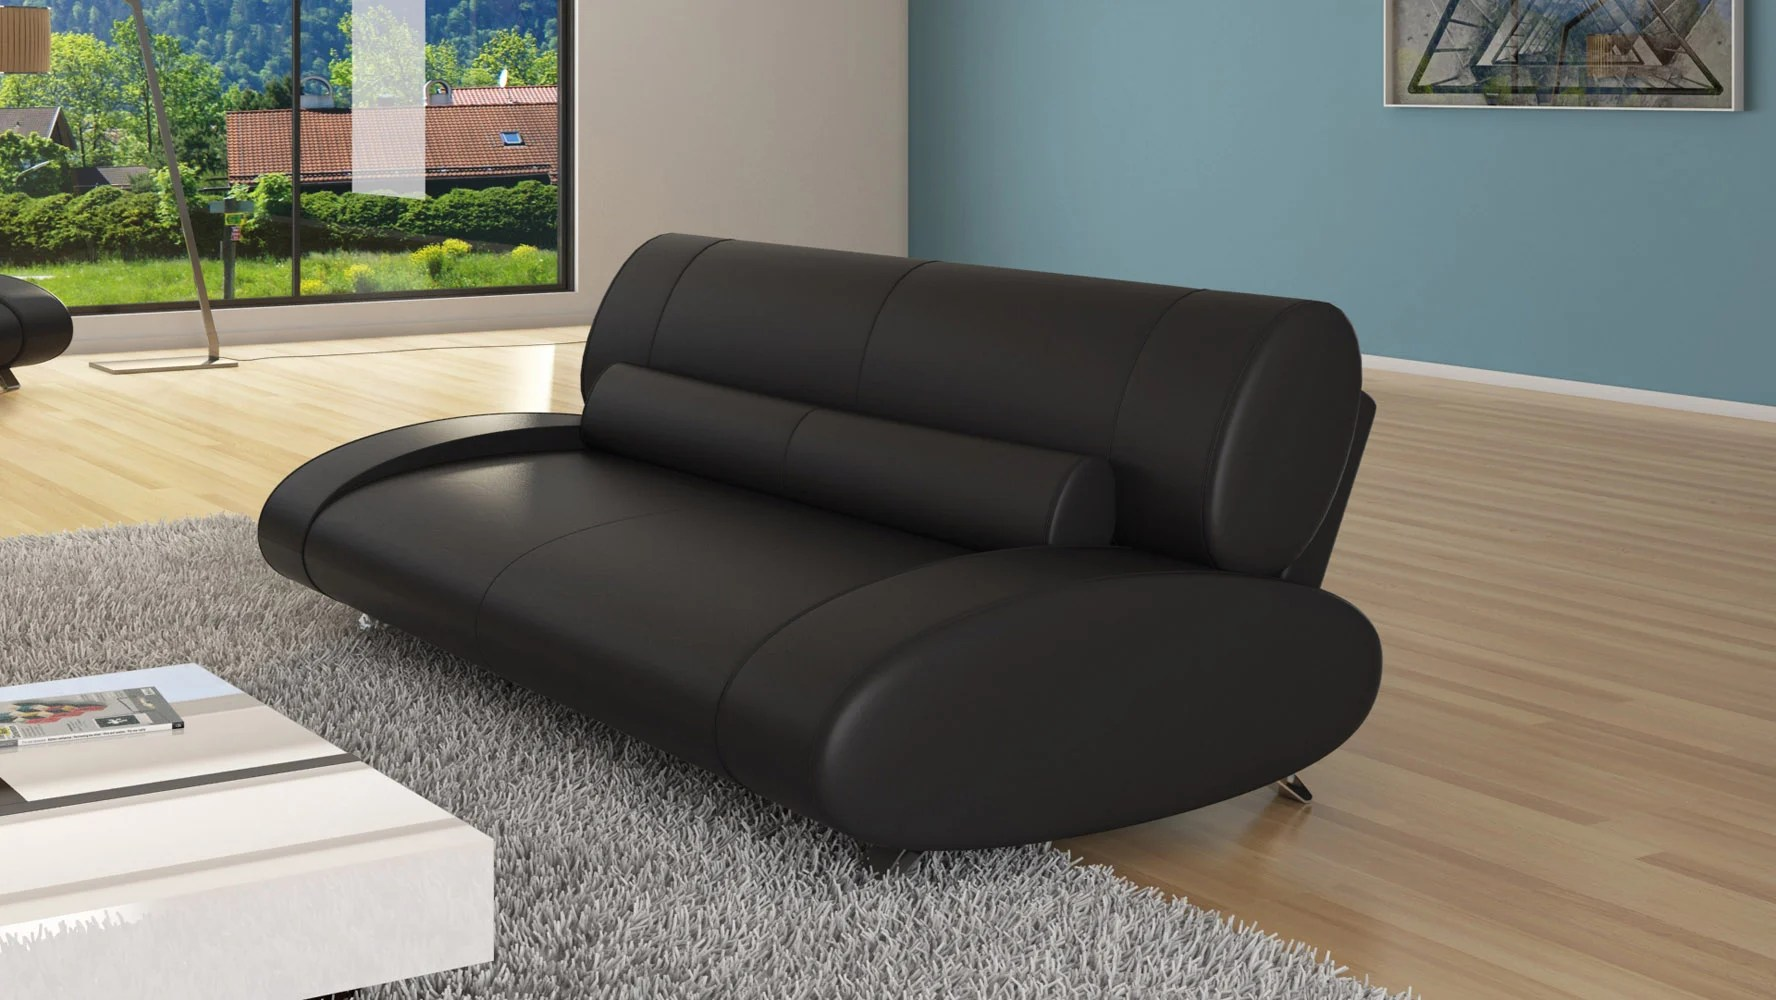 Big Sofa Aspen Aspen 3 Seater Zuri Furniture